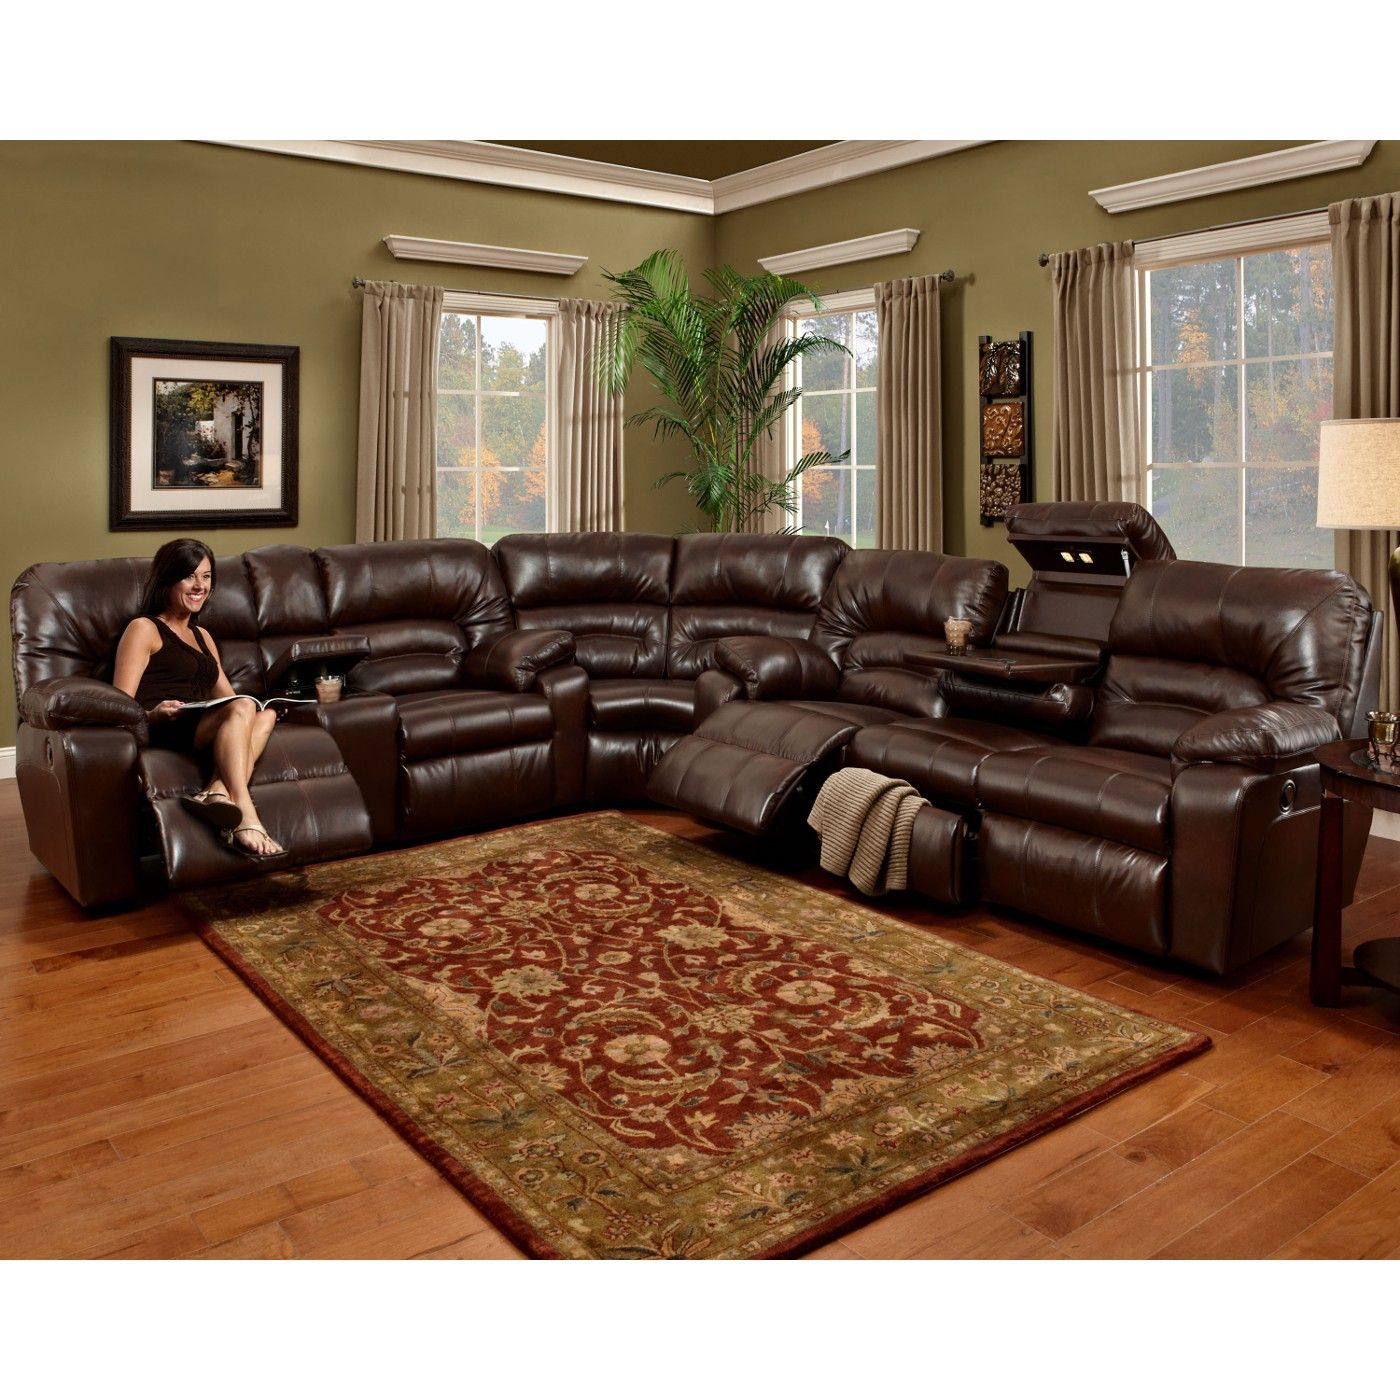 sofa excellent chaise quality room interior rusticr photo manufacturers chairs armchair leather living modern with couch rustic armchairs chair brown half incredible furniture sectional antonio and san